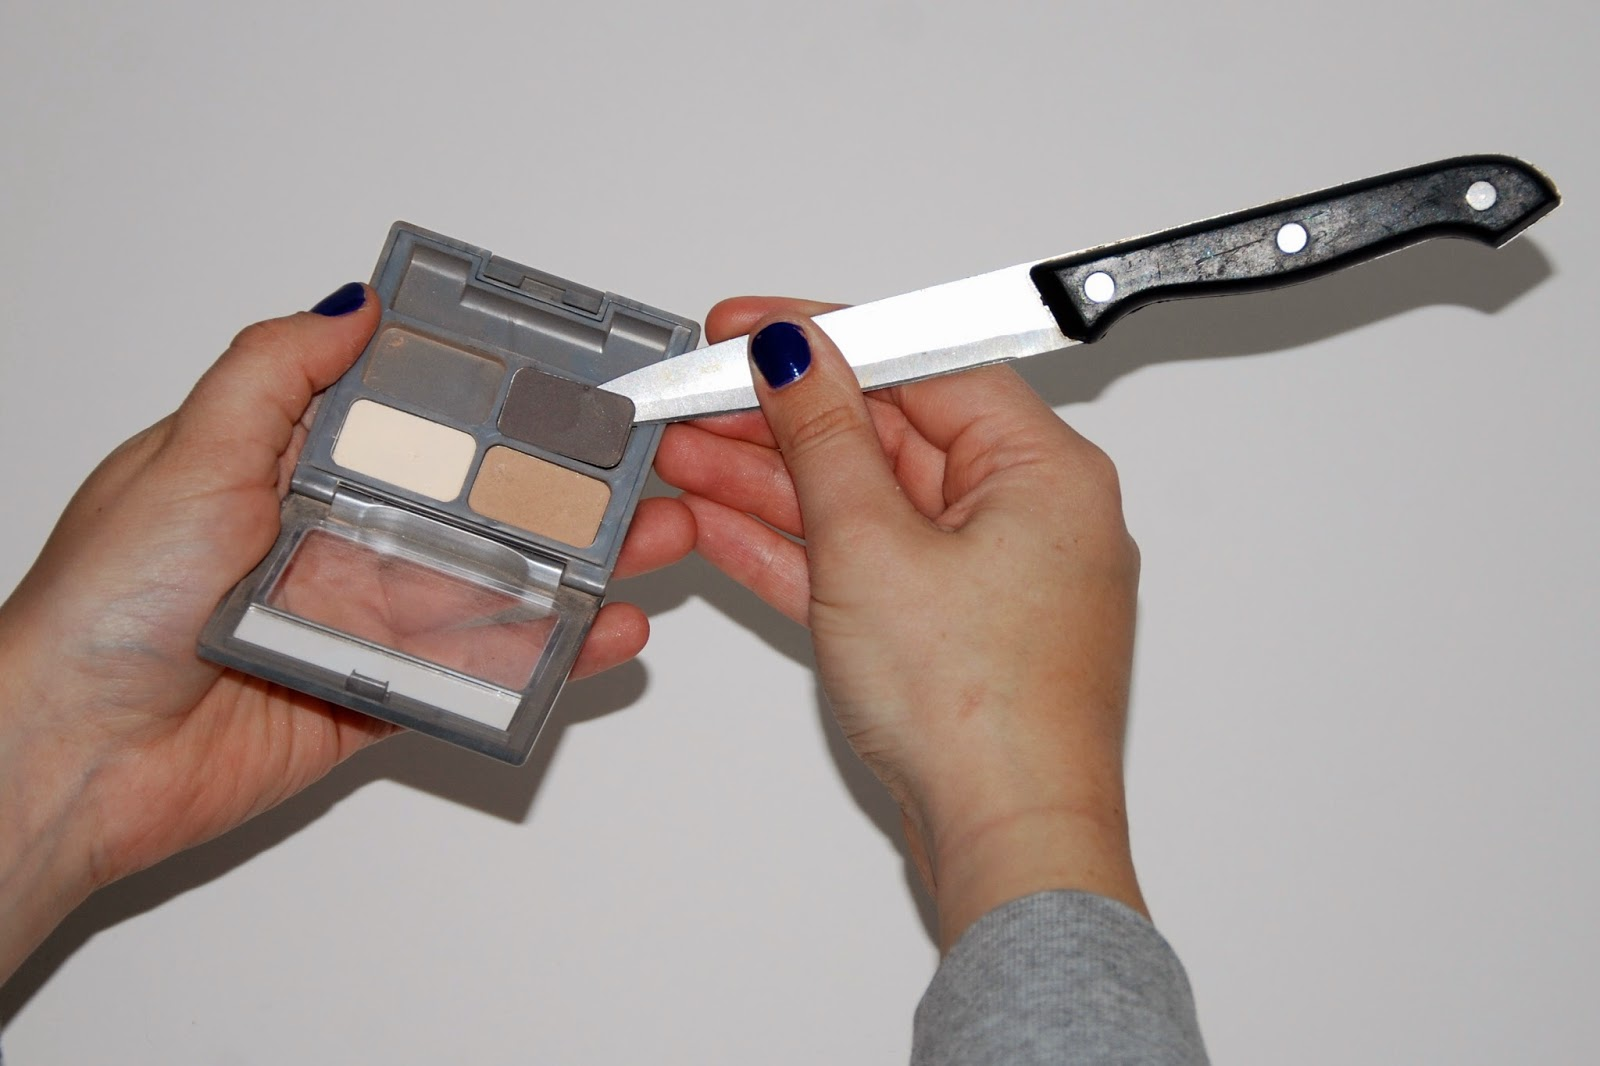 DIY Eyeshadow Palette - Knife to Pry Tin Loose